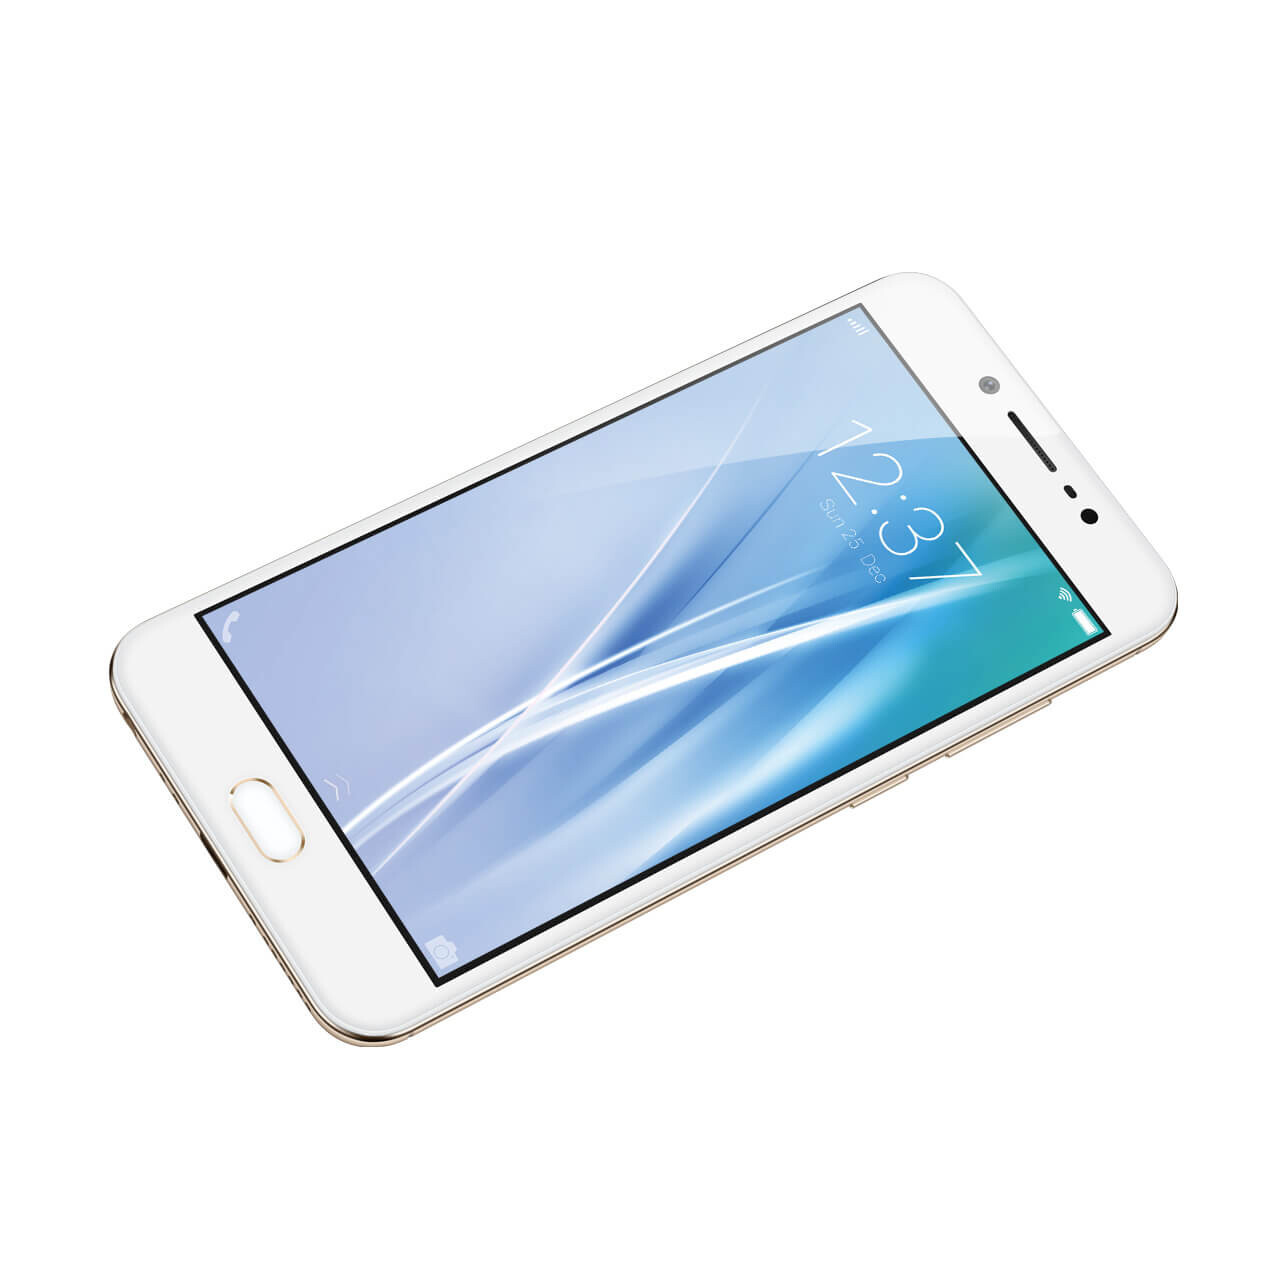 vivo v5 goes official with 20mp selfie camera snapdragon 652 cpu. Black Bedroom Furniture Sets. Home Design Ideas